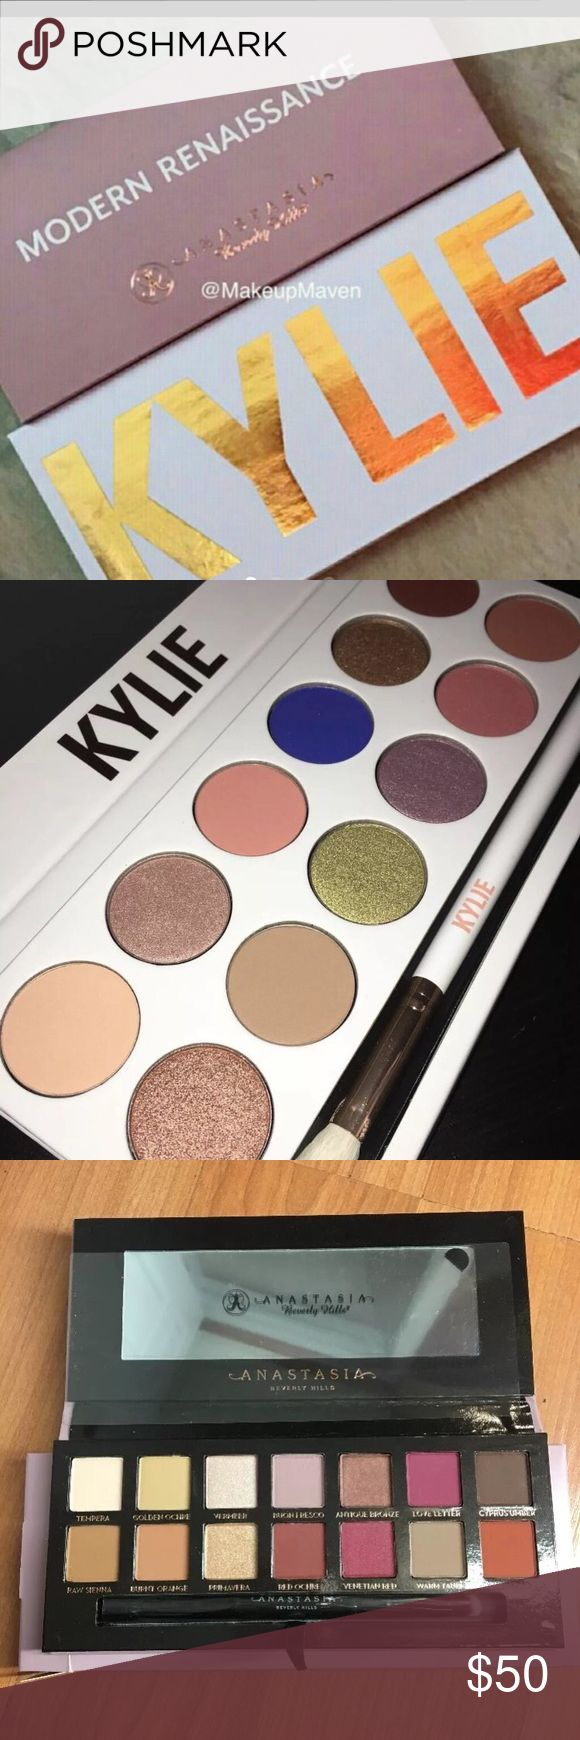 Bundle anastasia bh and Kylie Jenner royal peach 1 abh modern renaissance palette 1 Kylie Jenner royal peach Eyeshadow palette brand new in box authentic fast shipping Makeup Eyeshadow